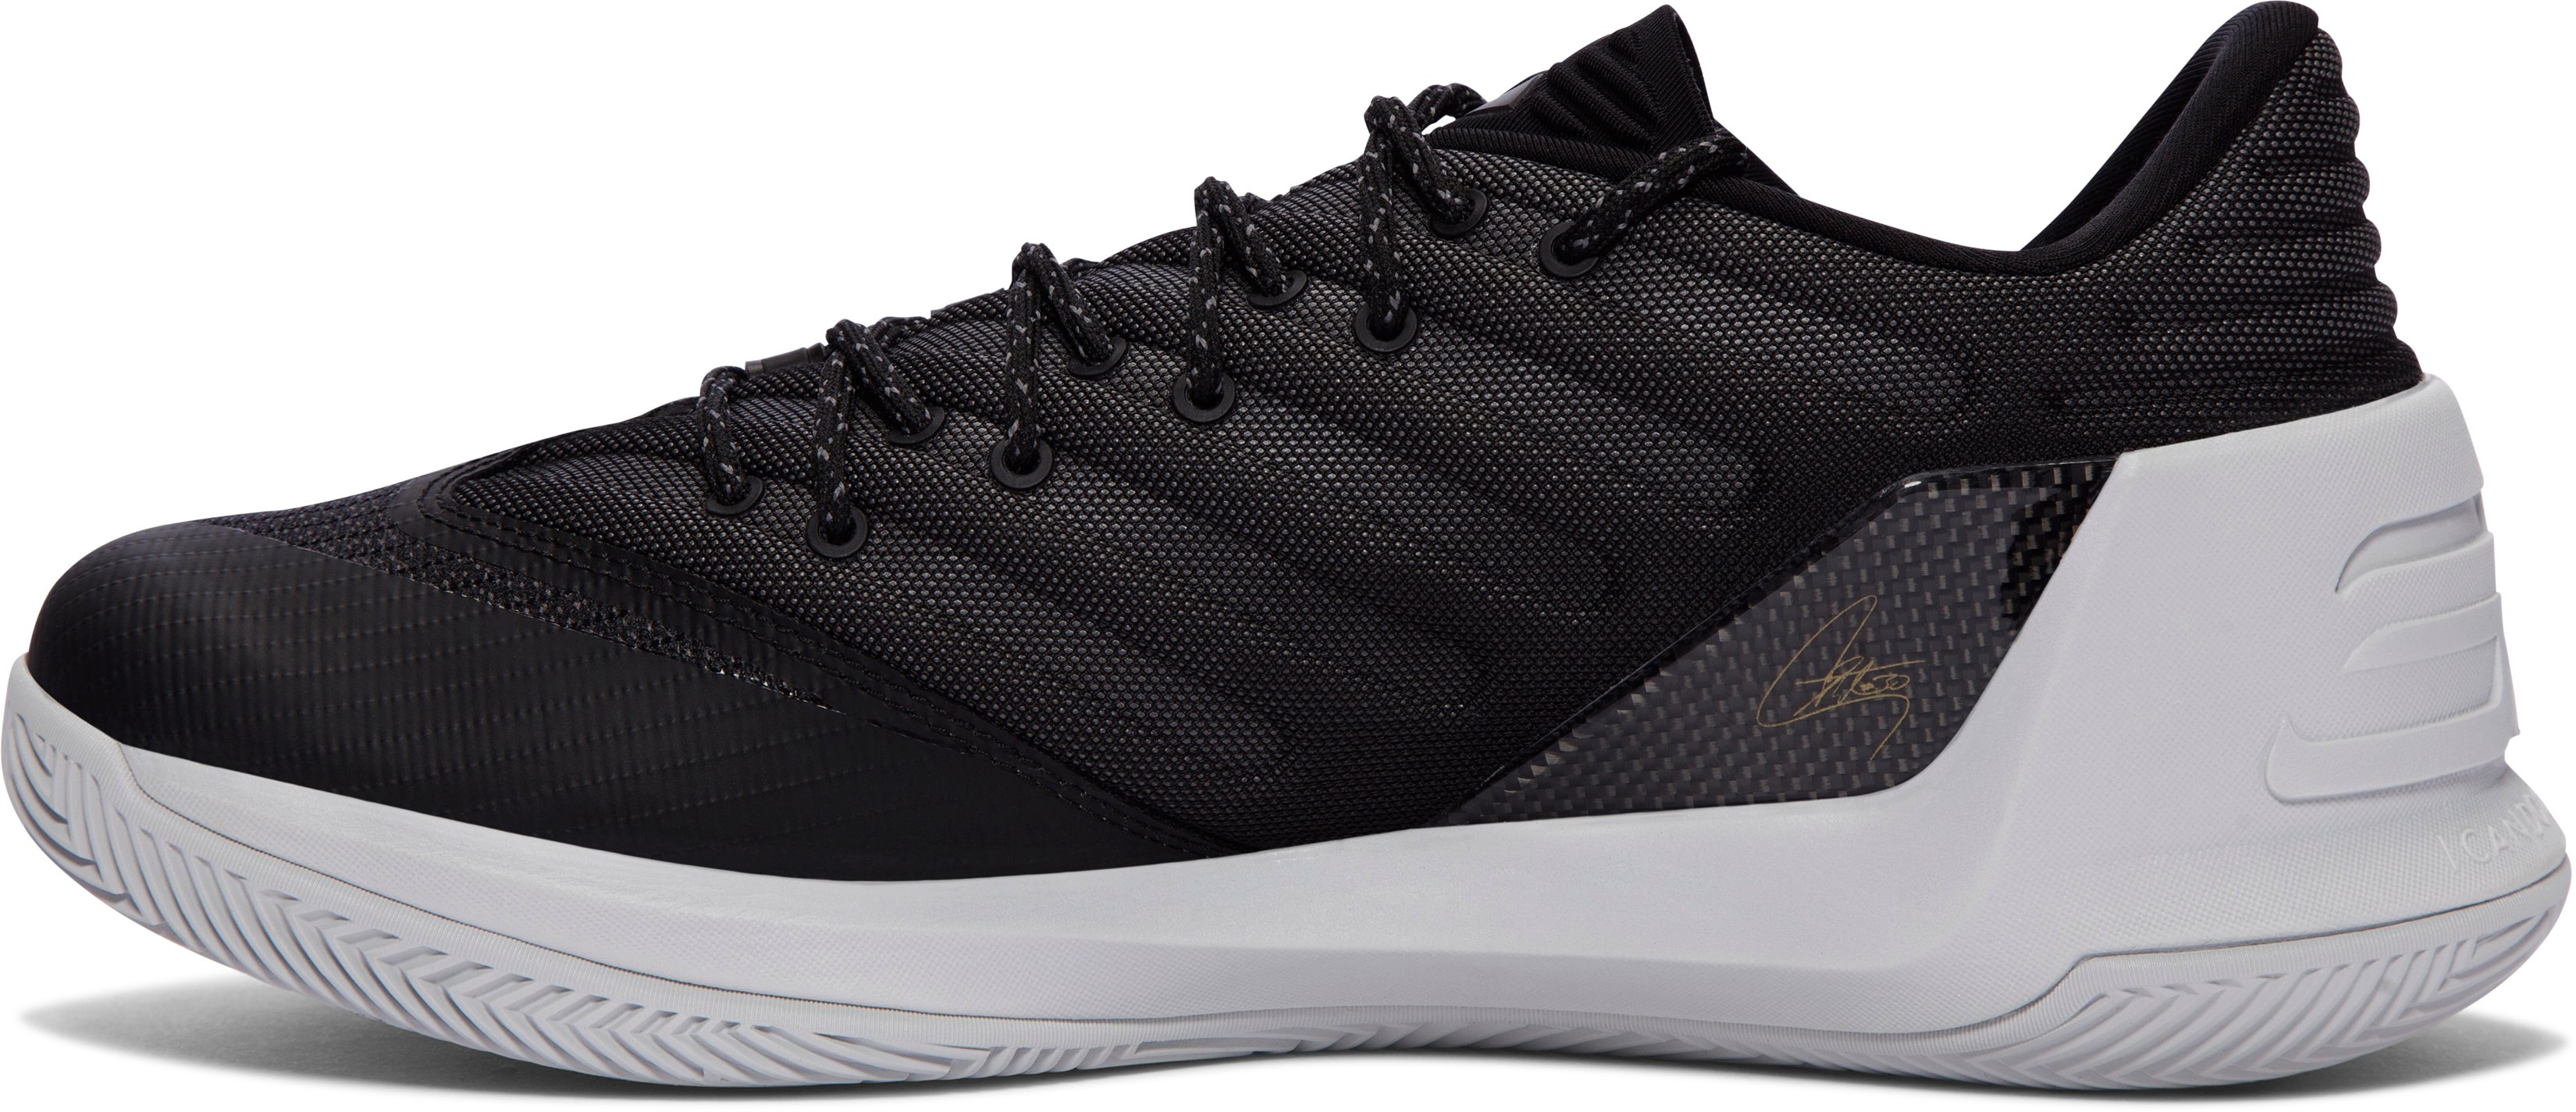 Men's UA Curry 3 Low Basketball Shoes, Black ,